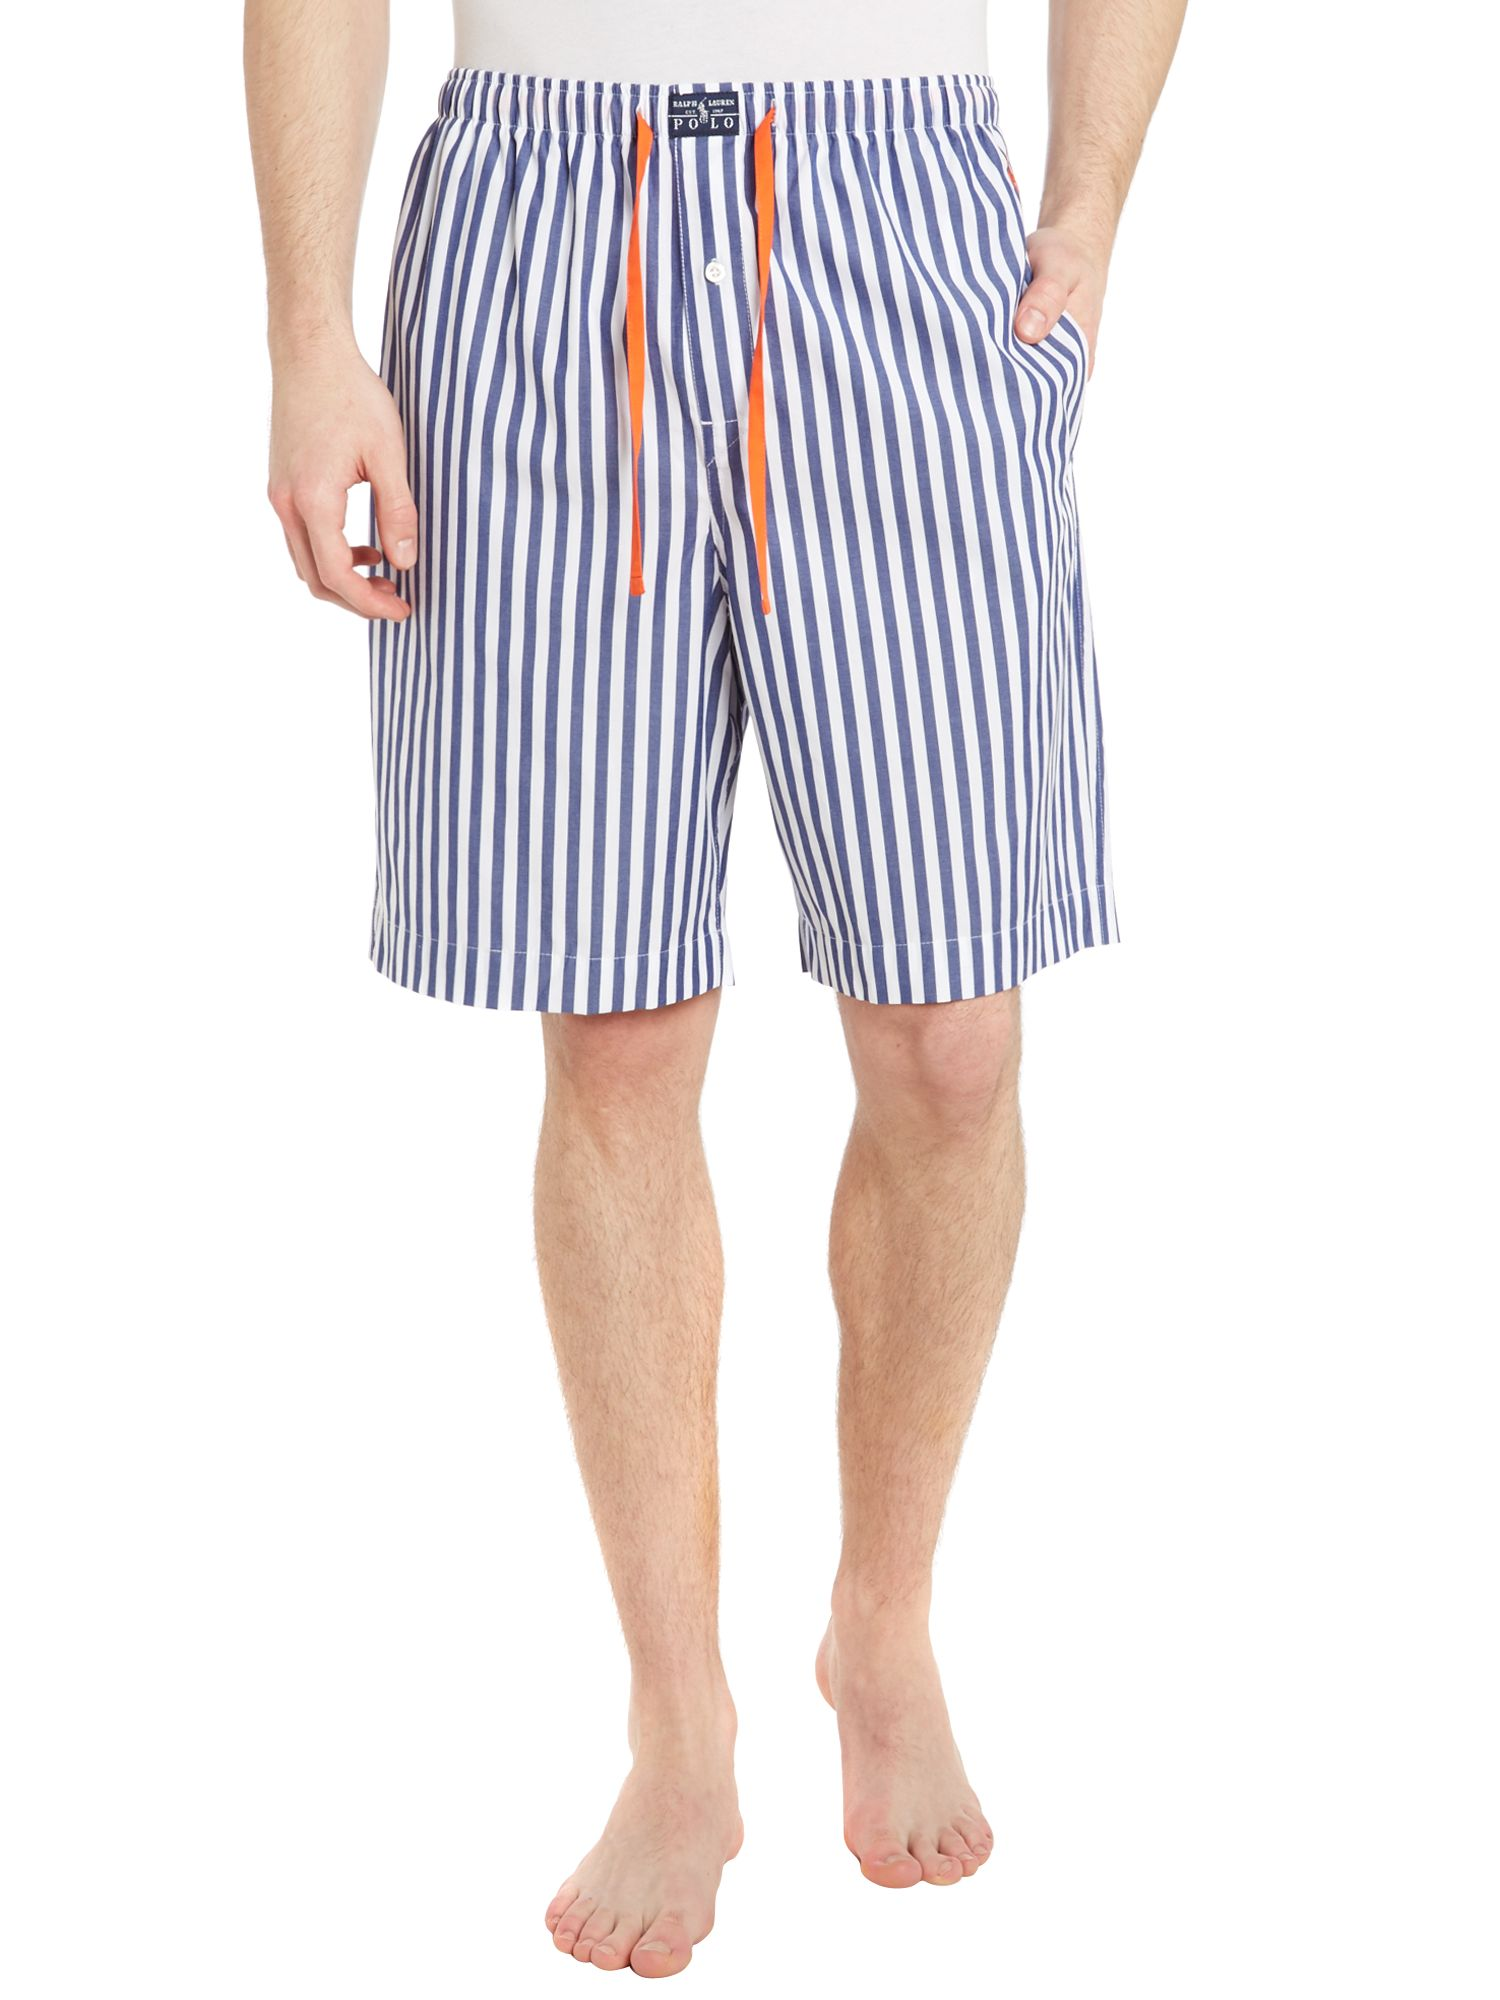 Stripe nightwear short